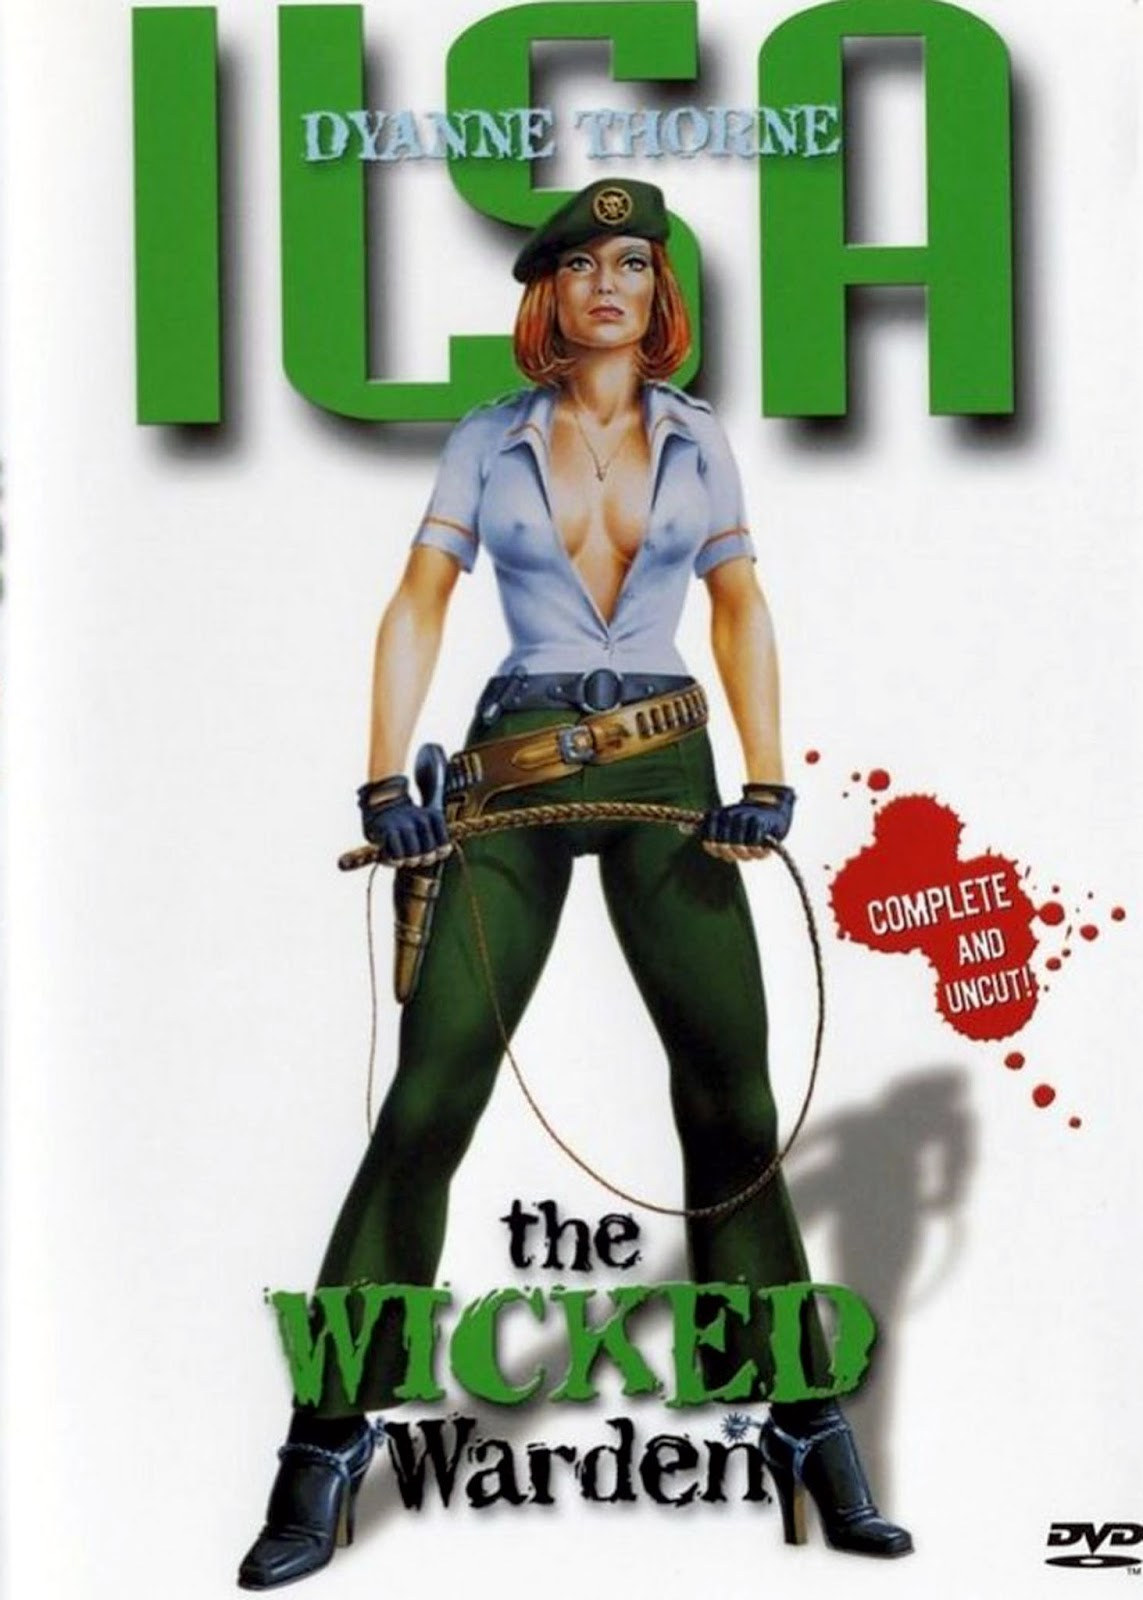 Ilsa the Wicked Warden (1977)